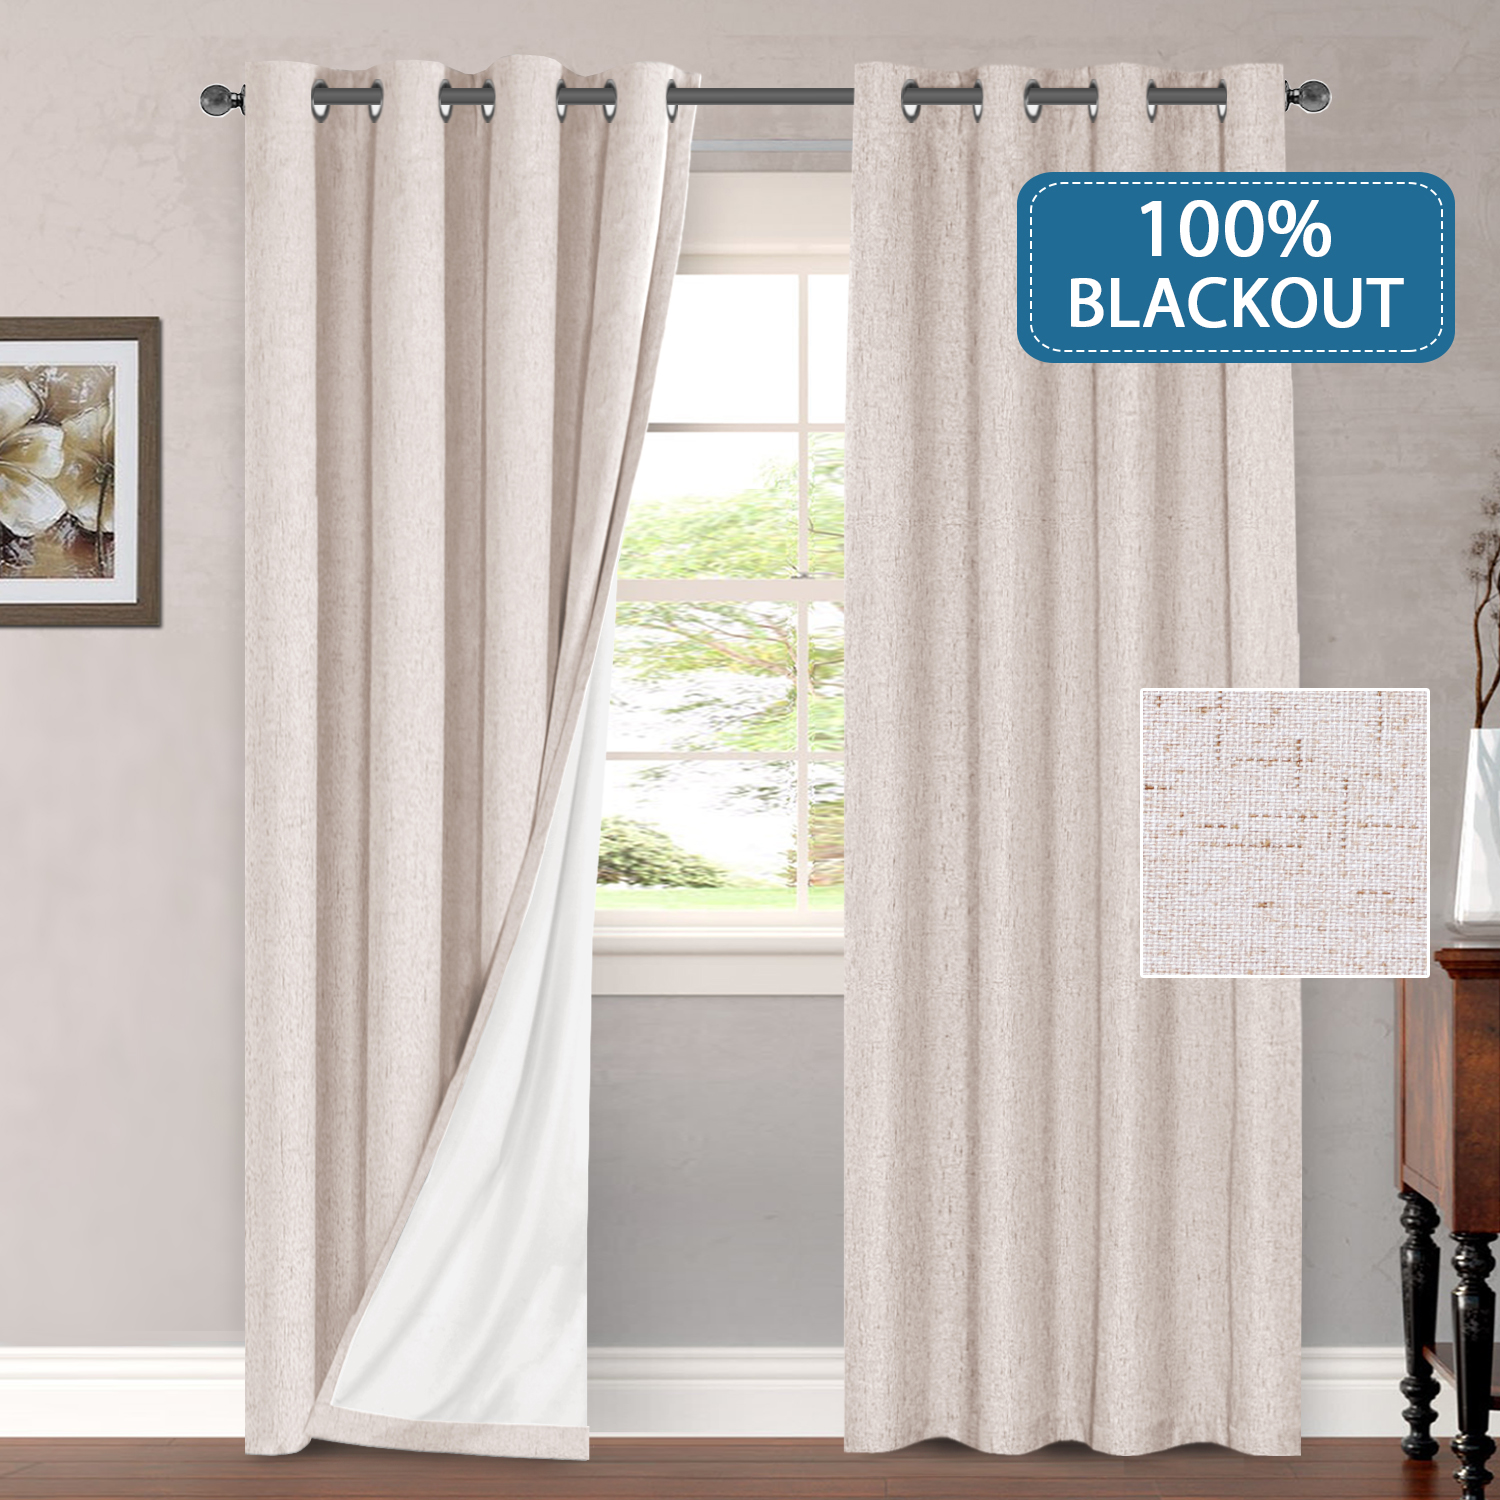 primitive linen look 100 blackout curtains waterproof burlap fabric curtains with white thermal insulated liner grommet top curtains for living